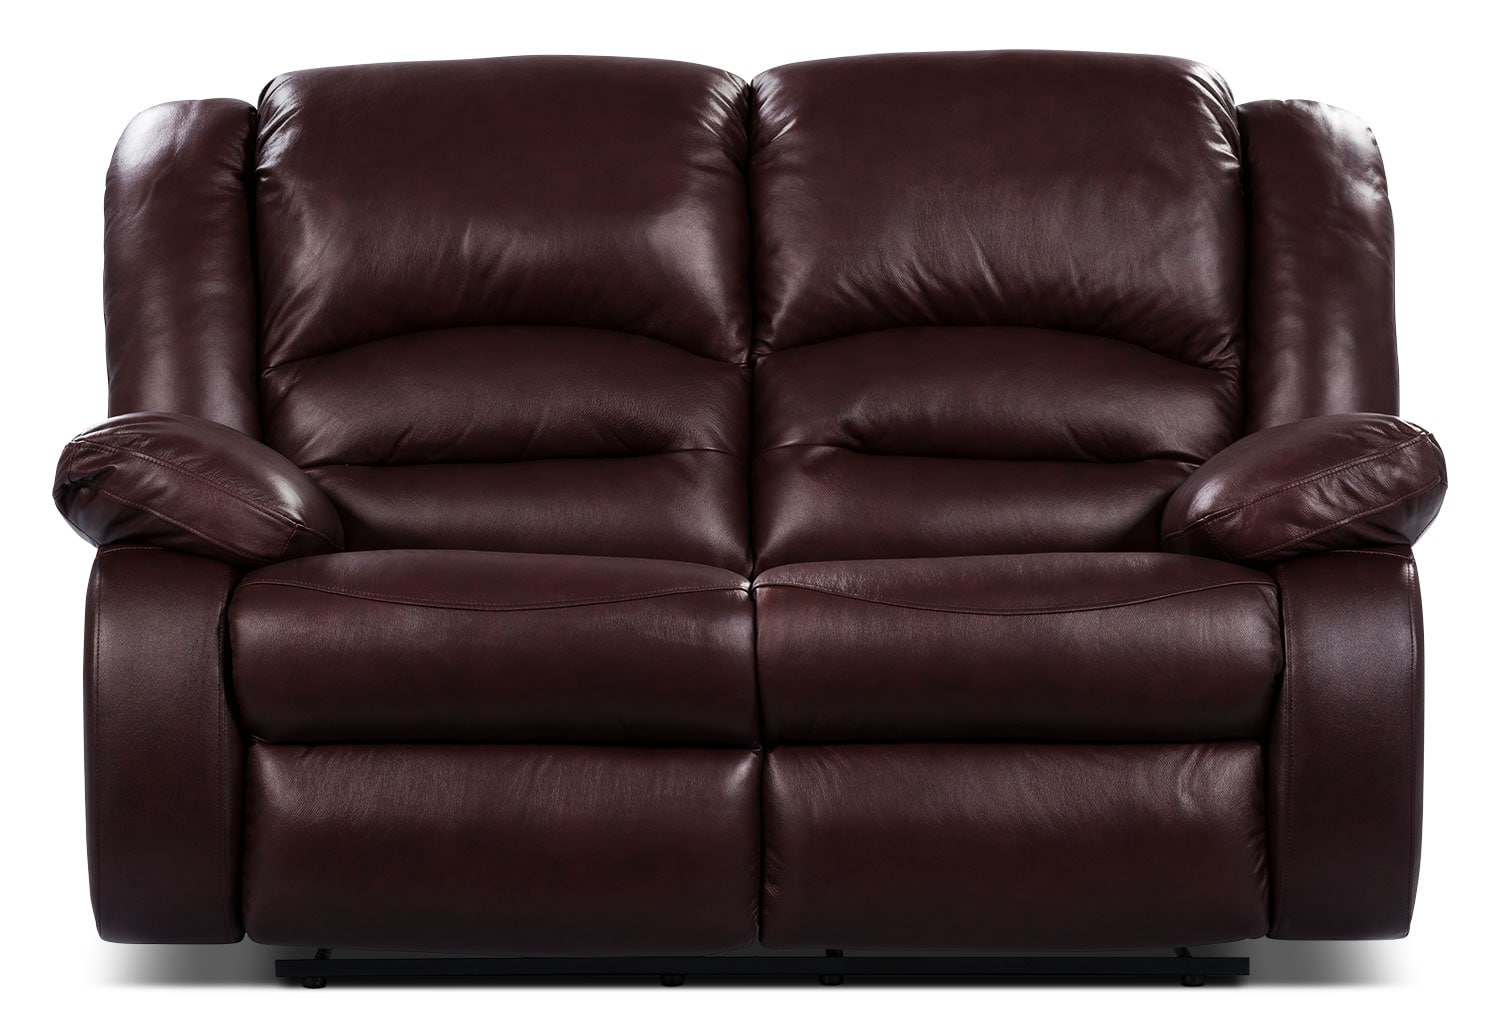 Toreno Genuine Leather Reclining Loveseat Burgundy The Brick